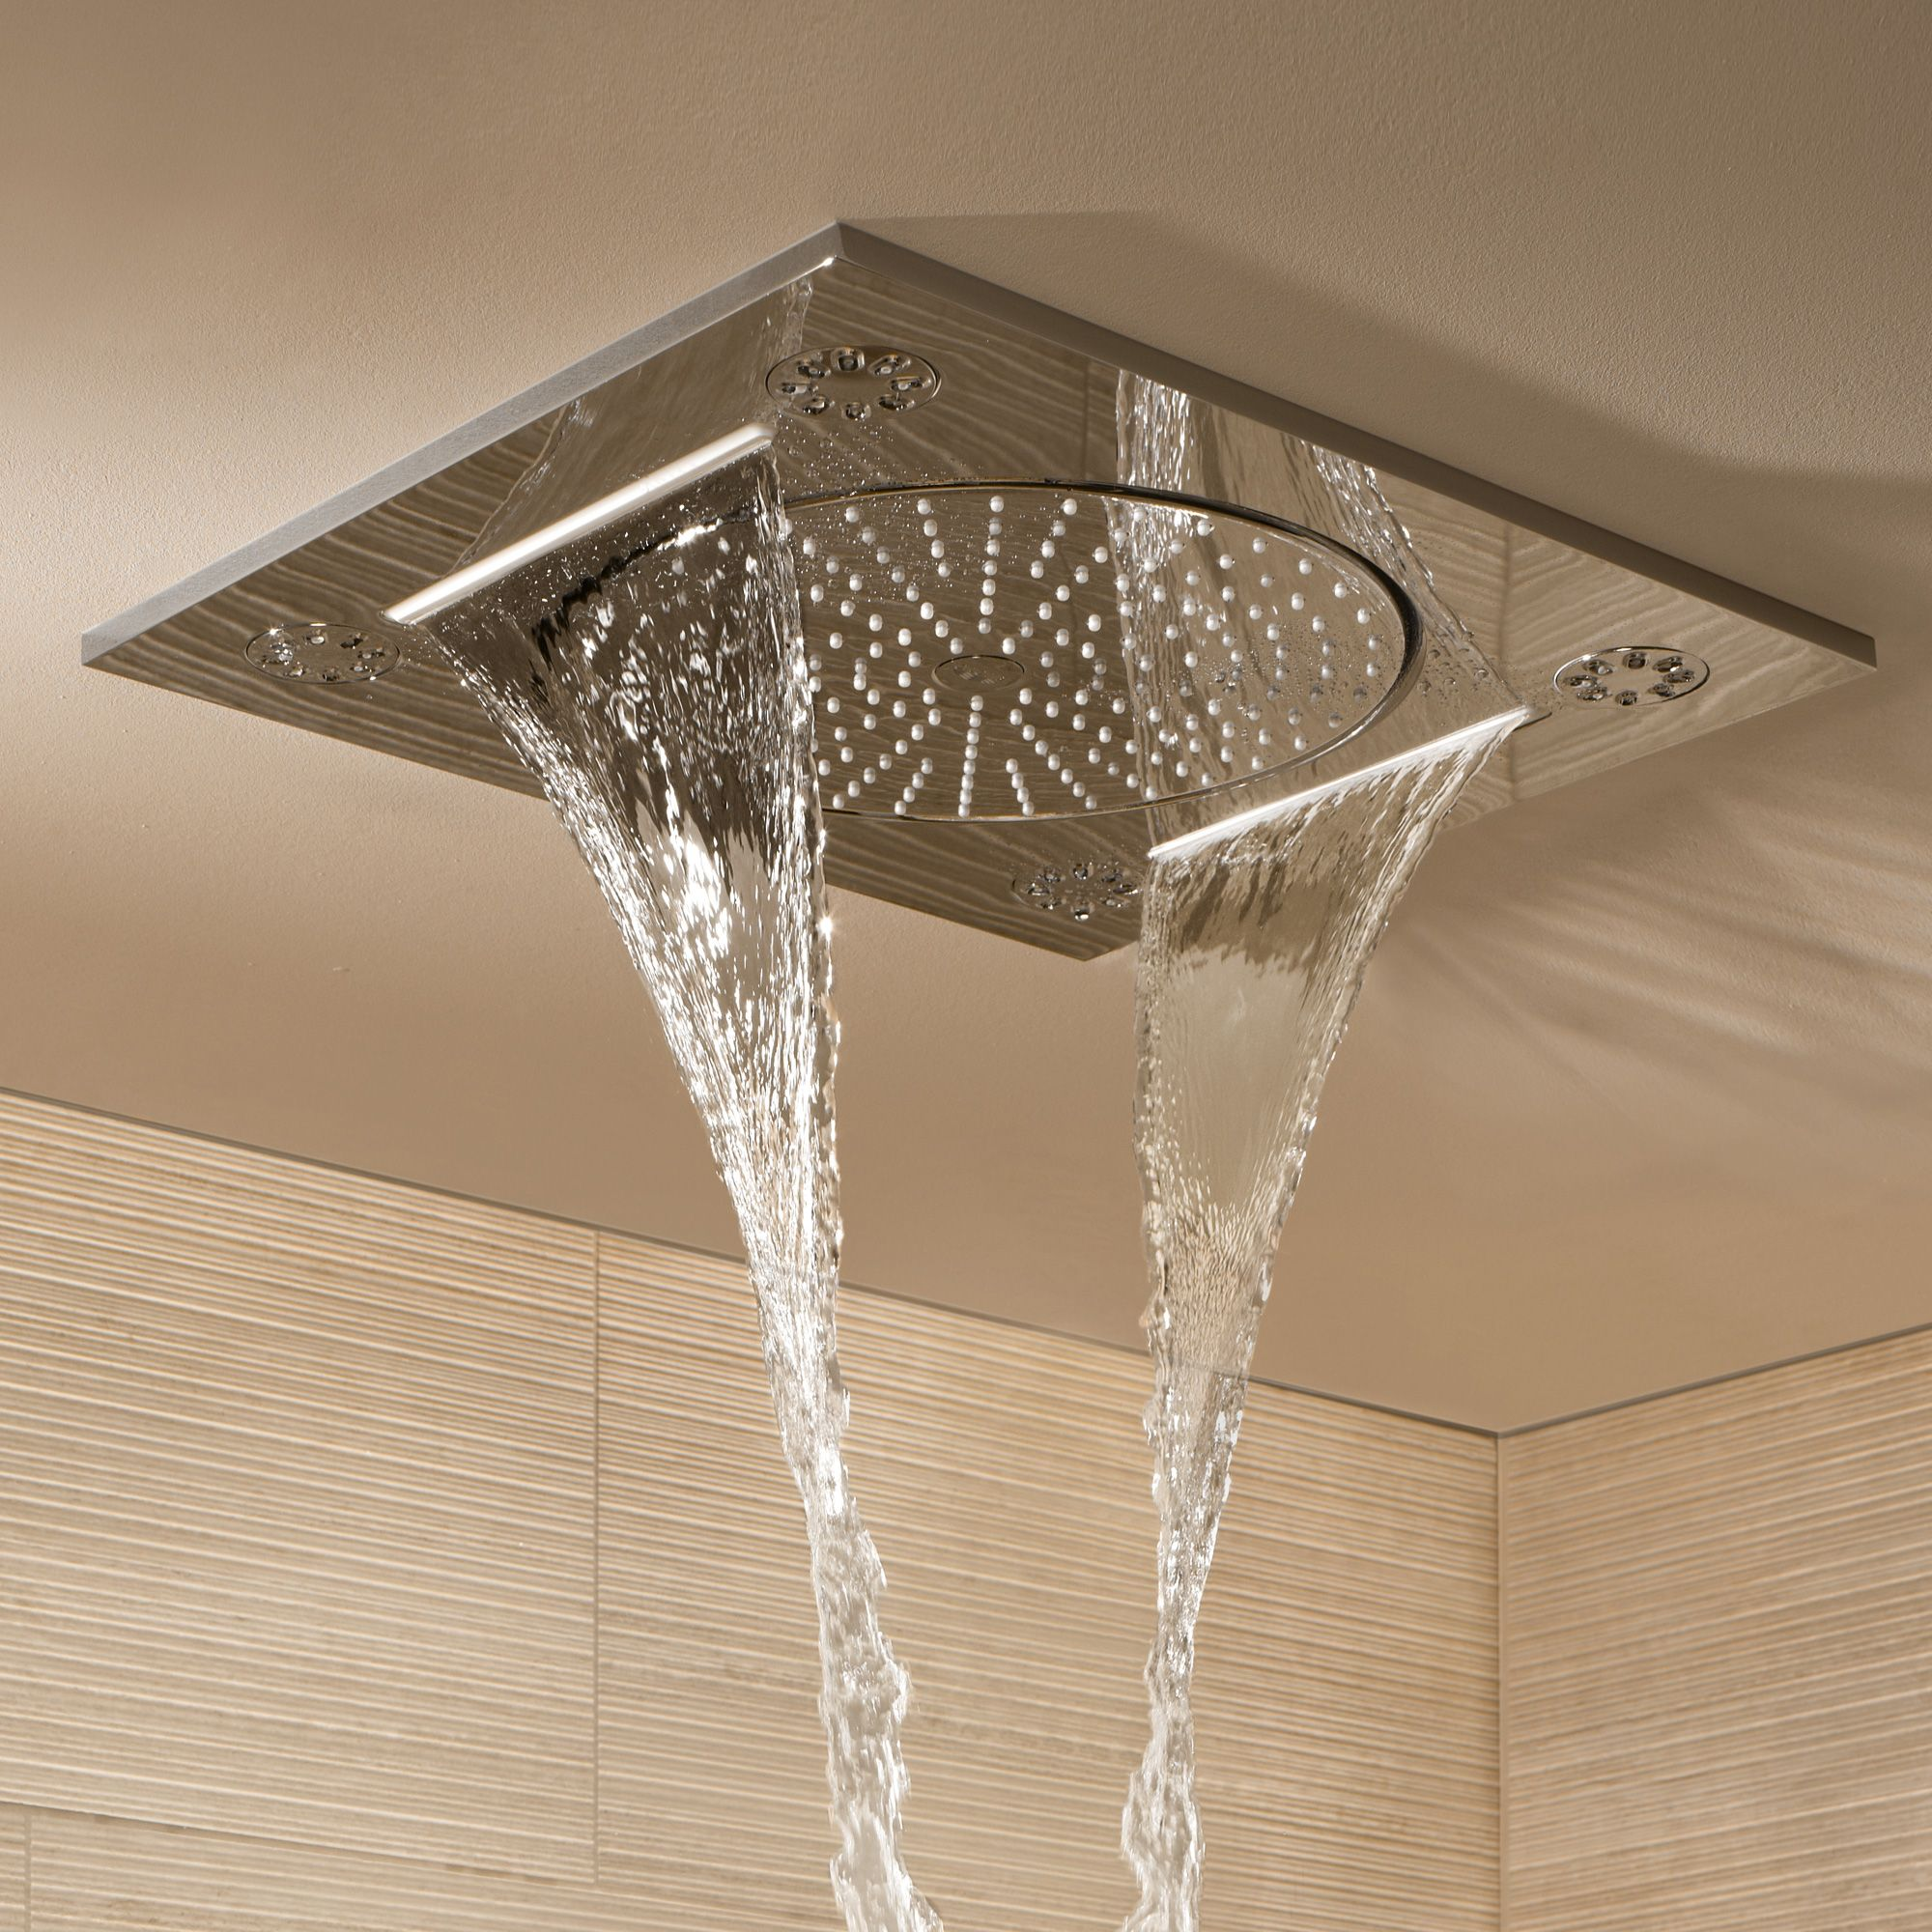 Pin By Oyinkansola Fatogun On Shower Head With Images Grohe